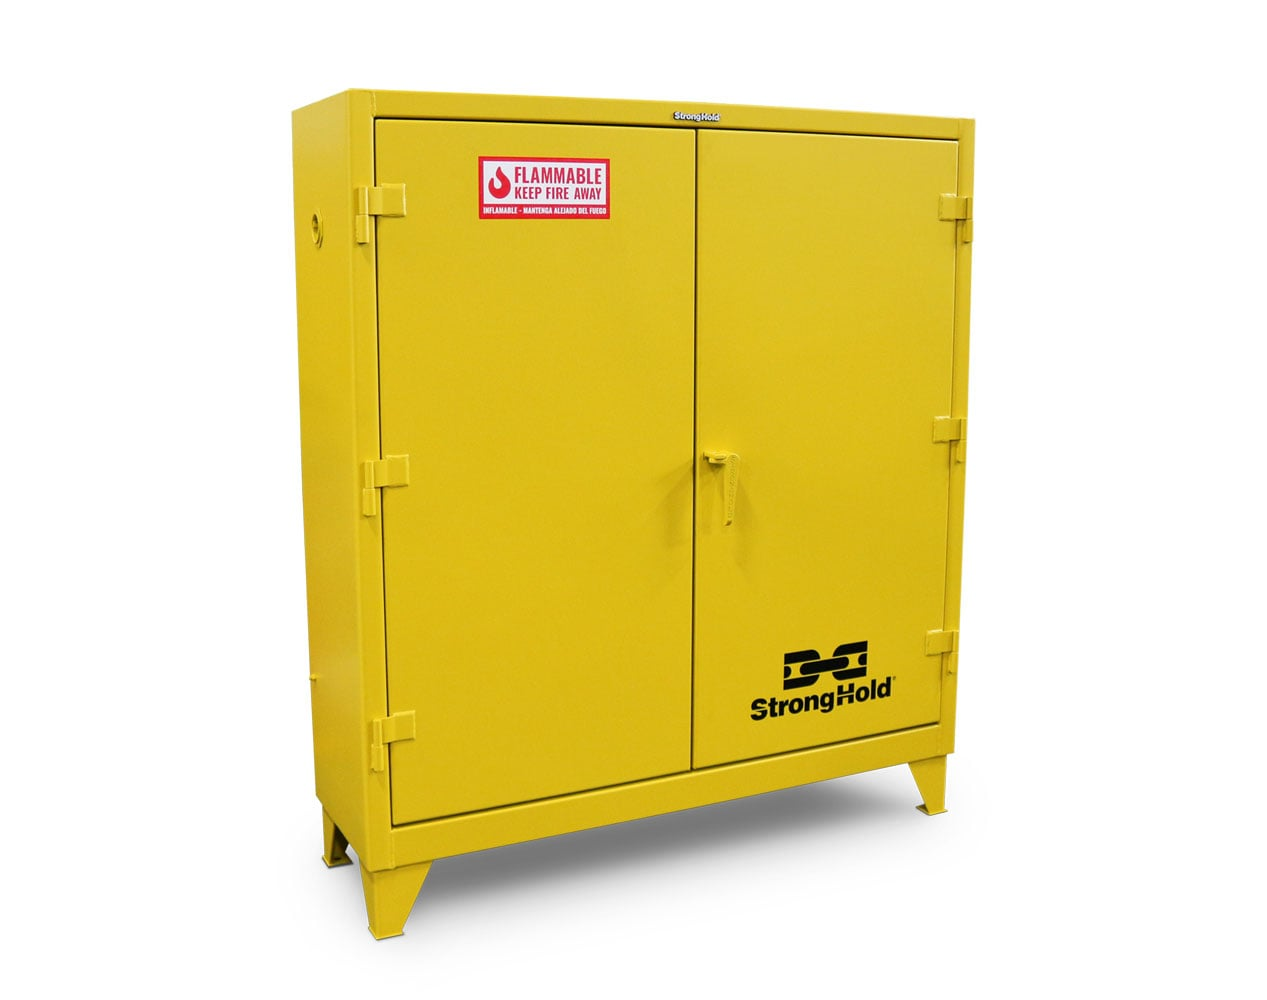 Extra Heavy Duty 12 GA 60 Gallon Flammable Safety Cabinet with Manual-Closing Doors, 2 Shelves – 58 In. W x 18 In. D x 66 In. H